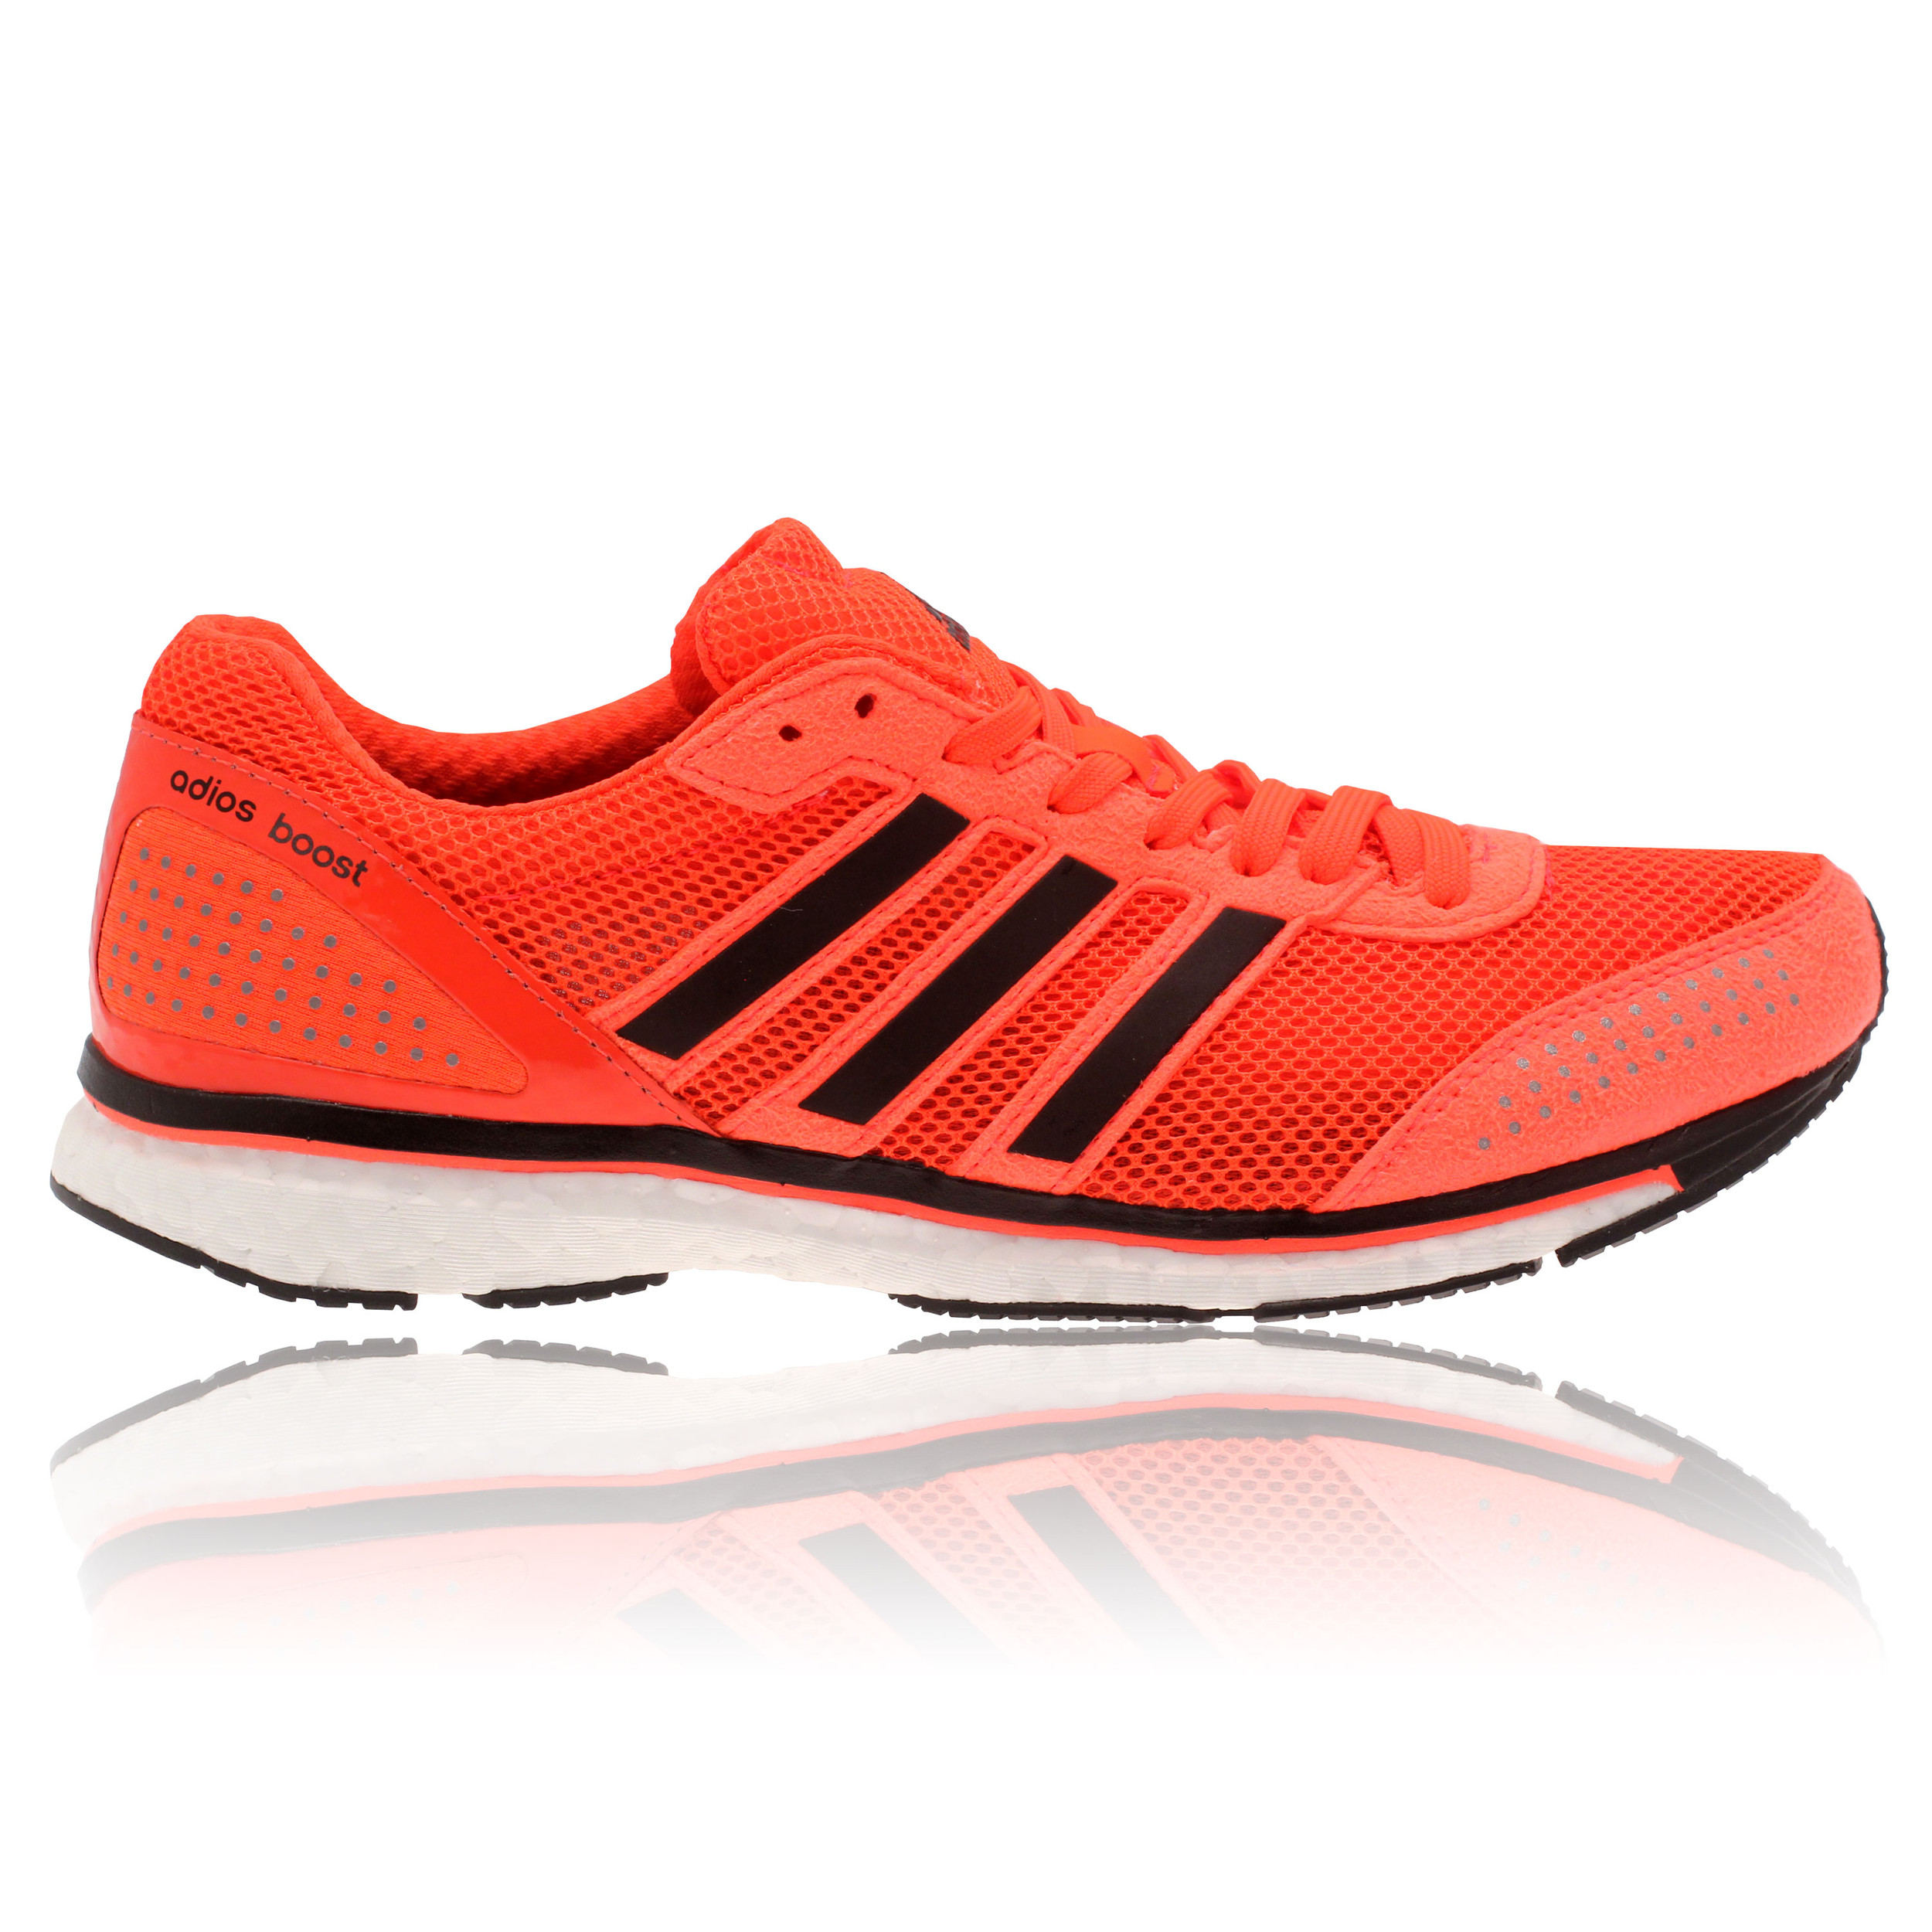 Adidas Adios Boost 2 Running Shoes